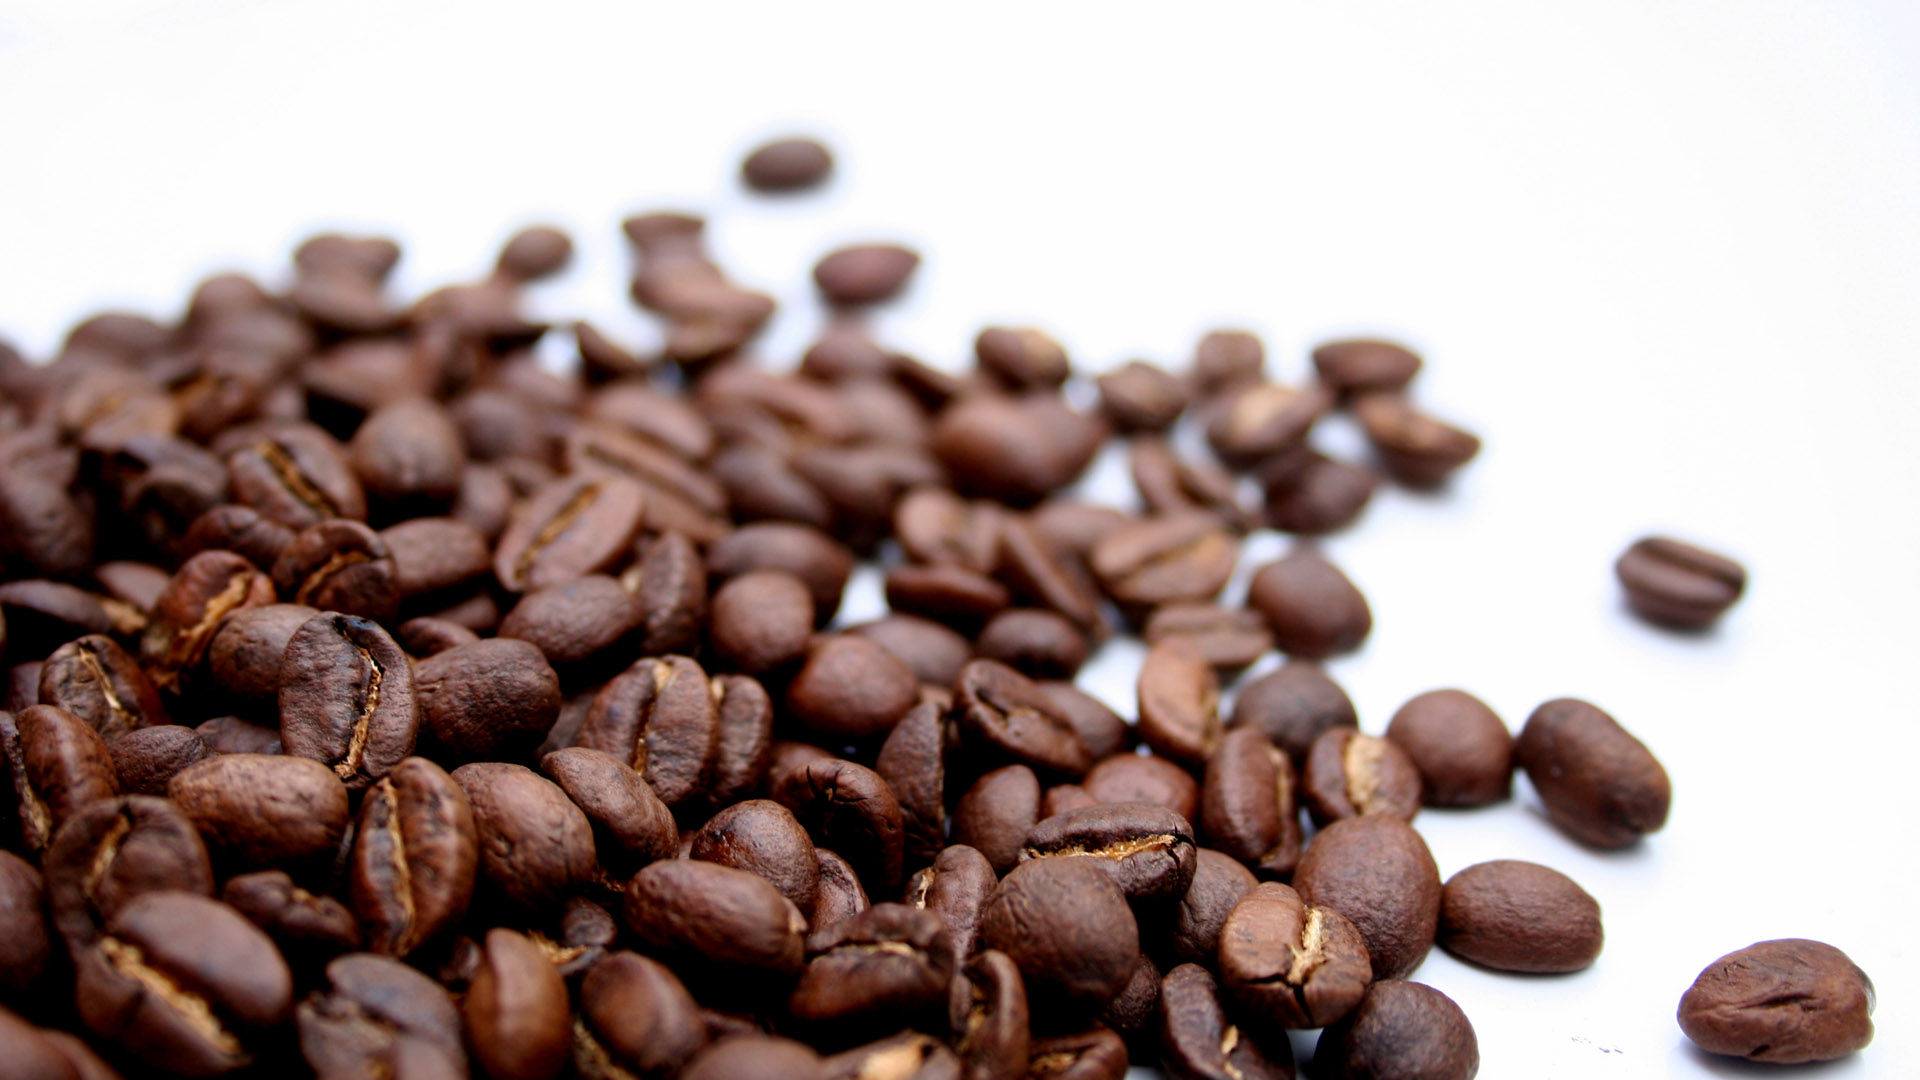 coffee-beans-Google-Search-wallpaper-wpc5803554